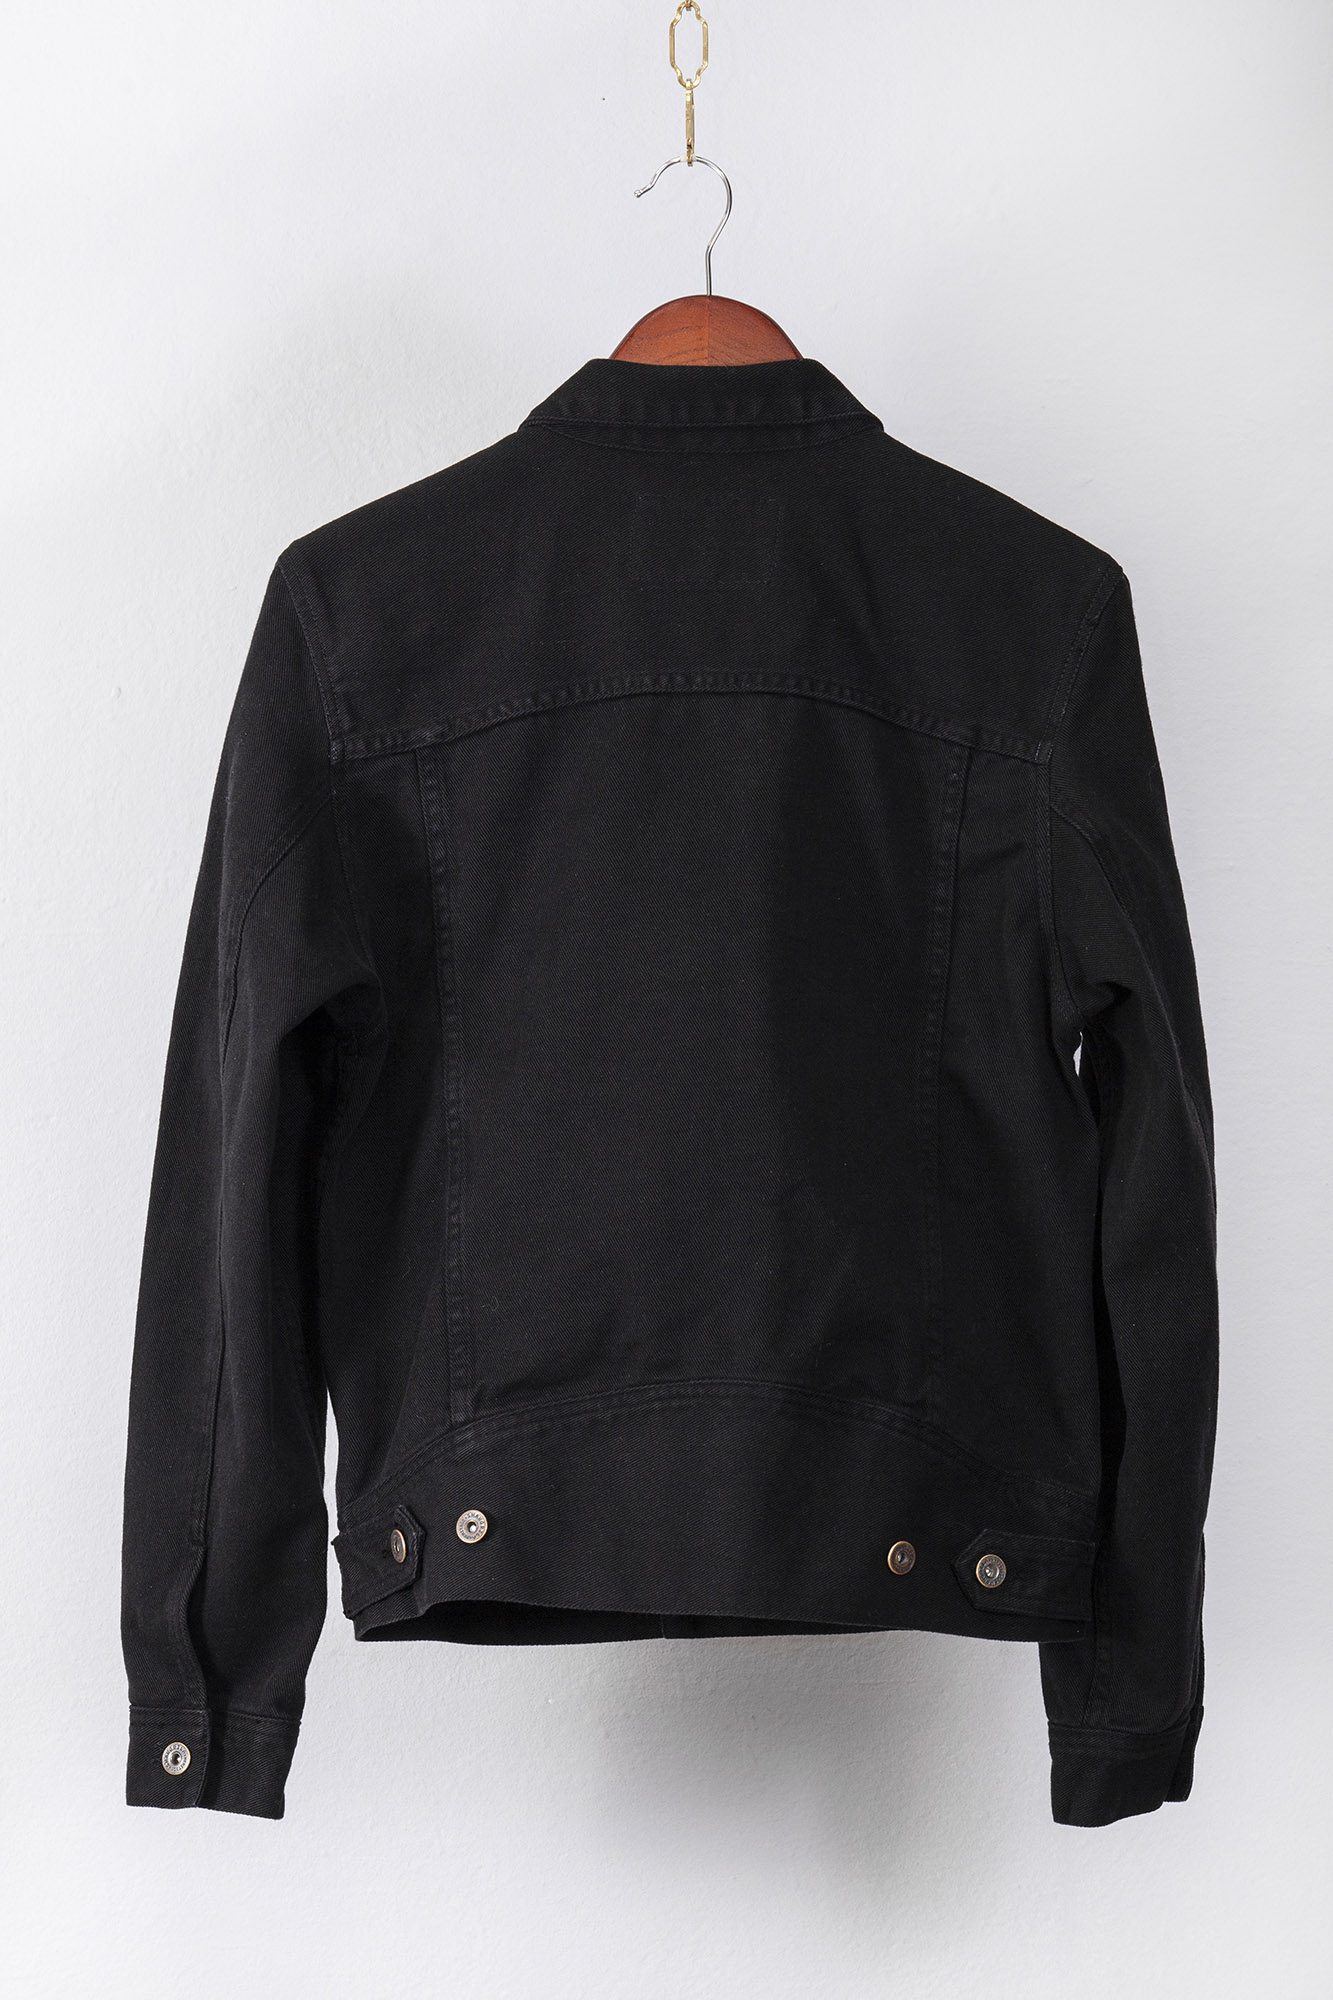 shangri-la-heritage-single-rider-black-canvas-jacket-still-life-back